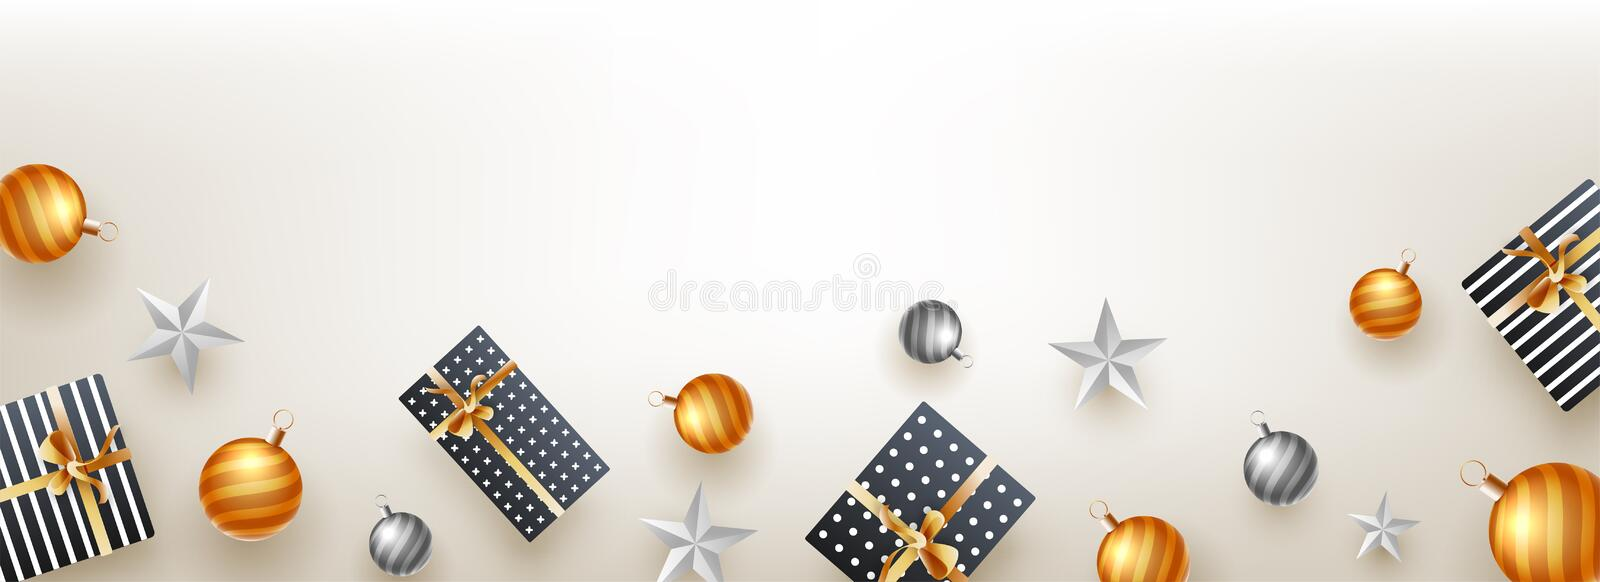 Website header or banner design, top view of gift boxes, stars a royalty free illustration